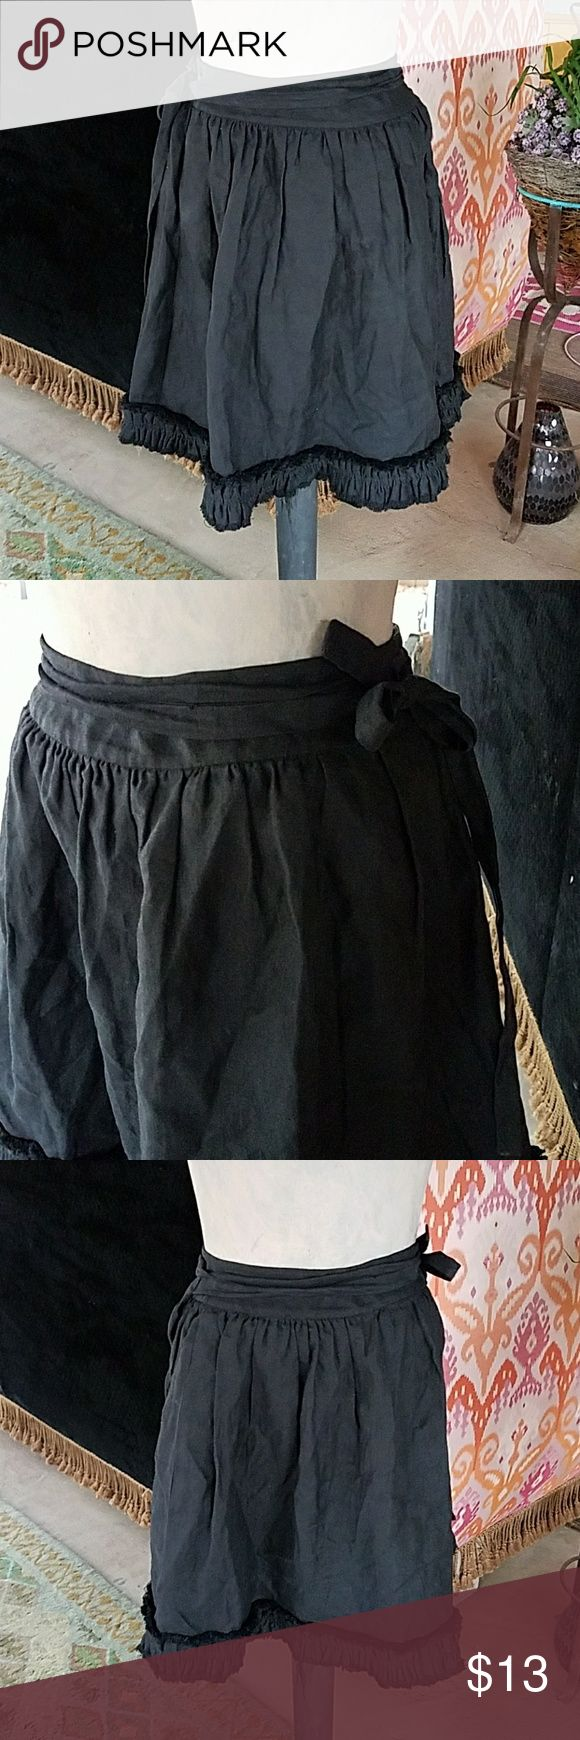 !! Kate spade !!  sz M WRAP linen skirt Sz m lined linen skirt cute year around, throw some tights on and rock it :) kate spade Skirts